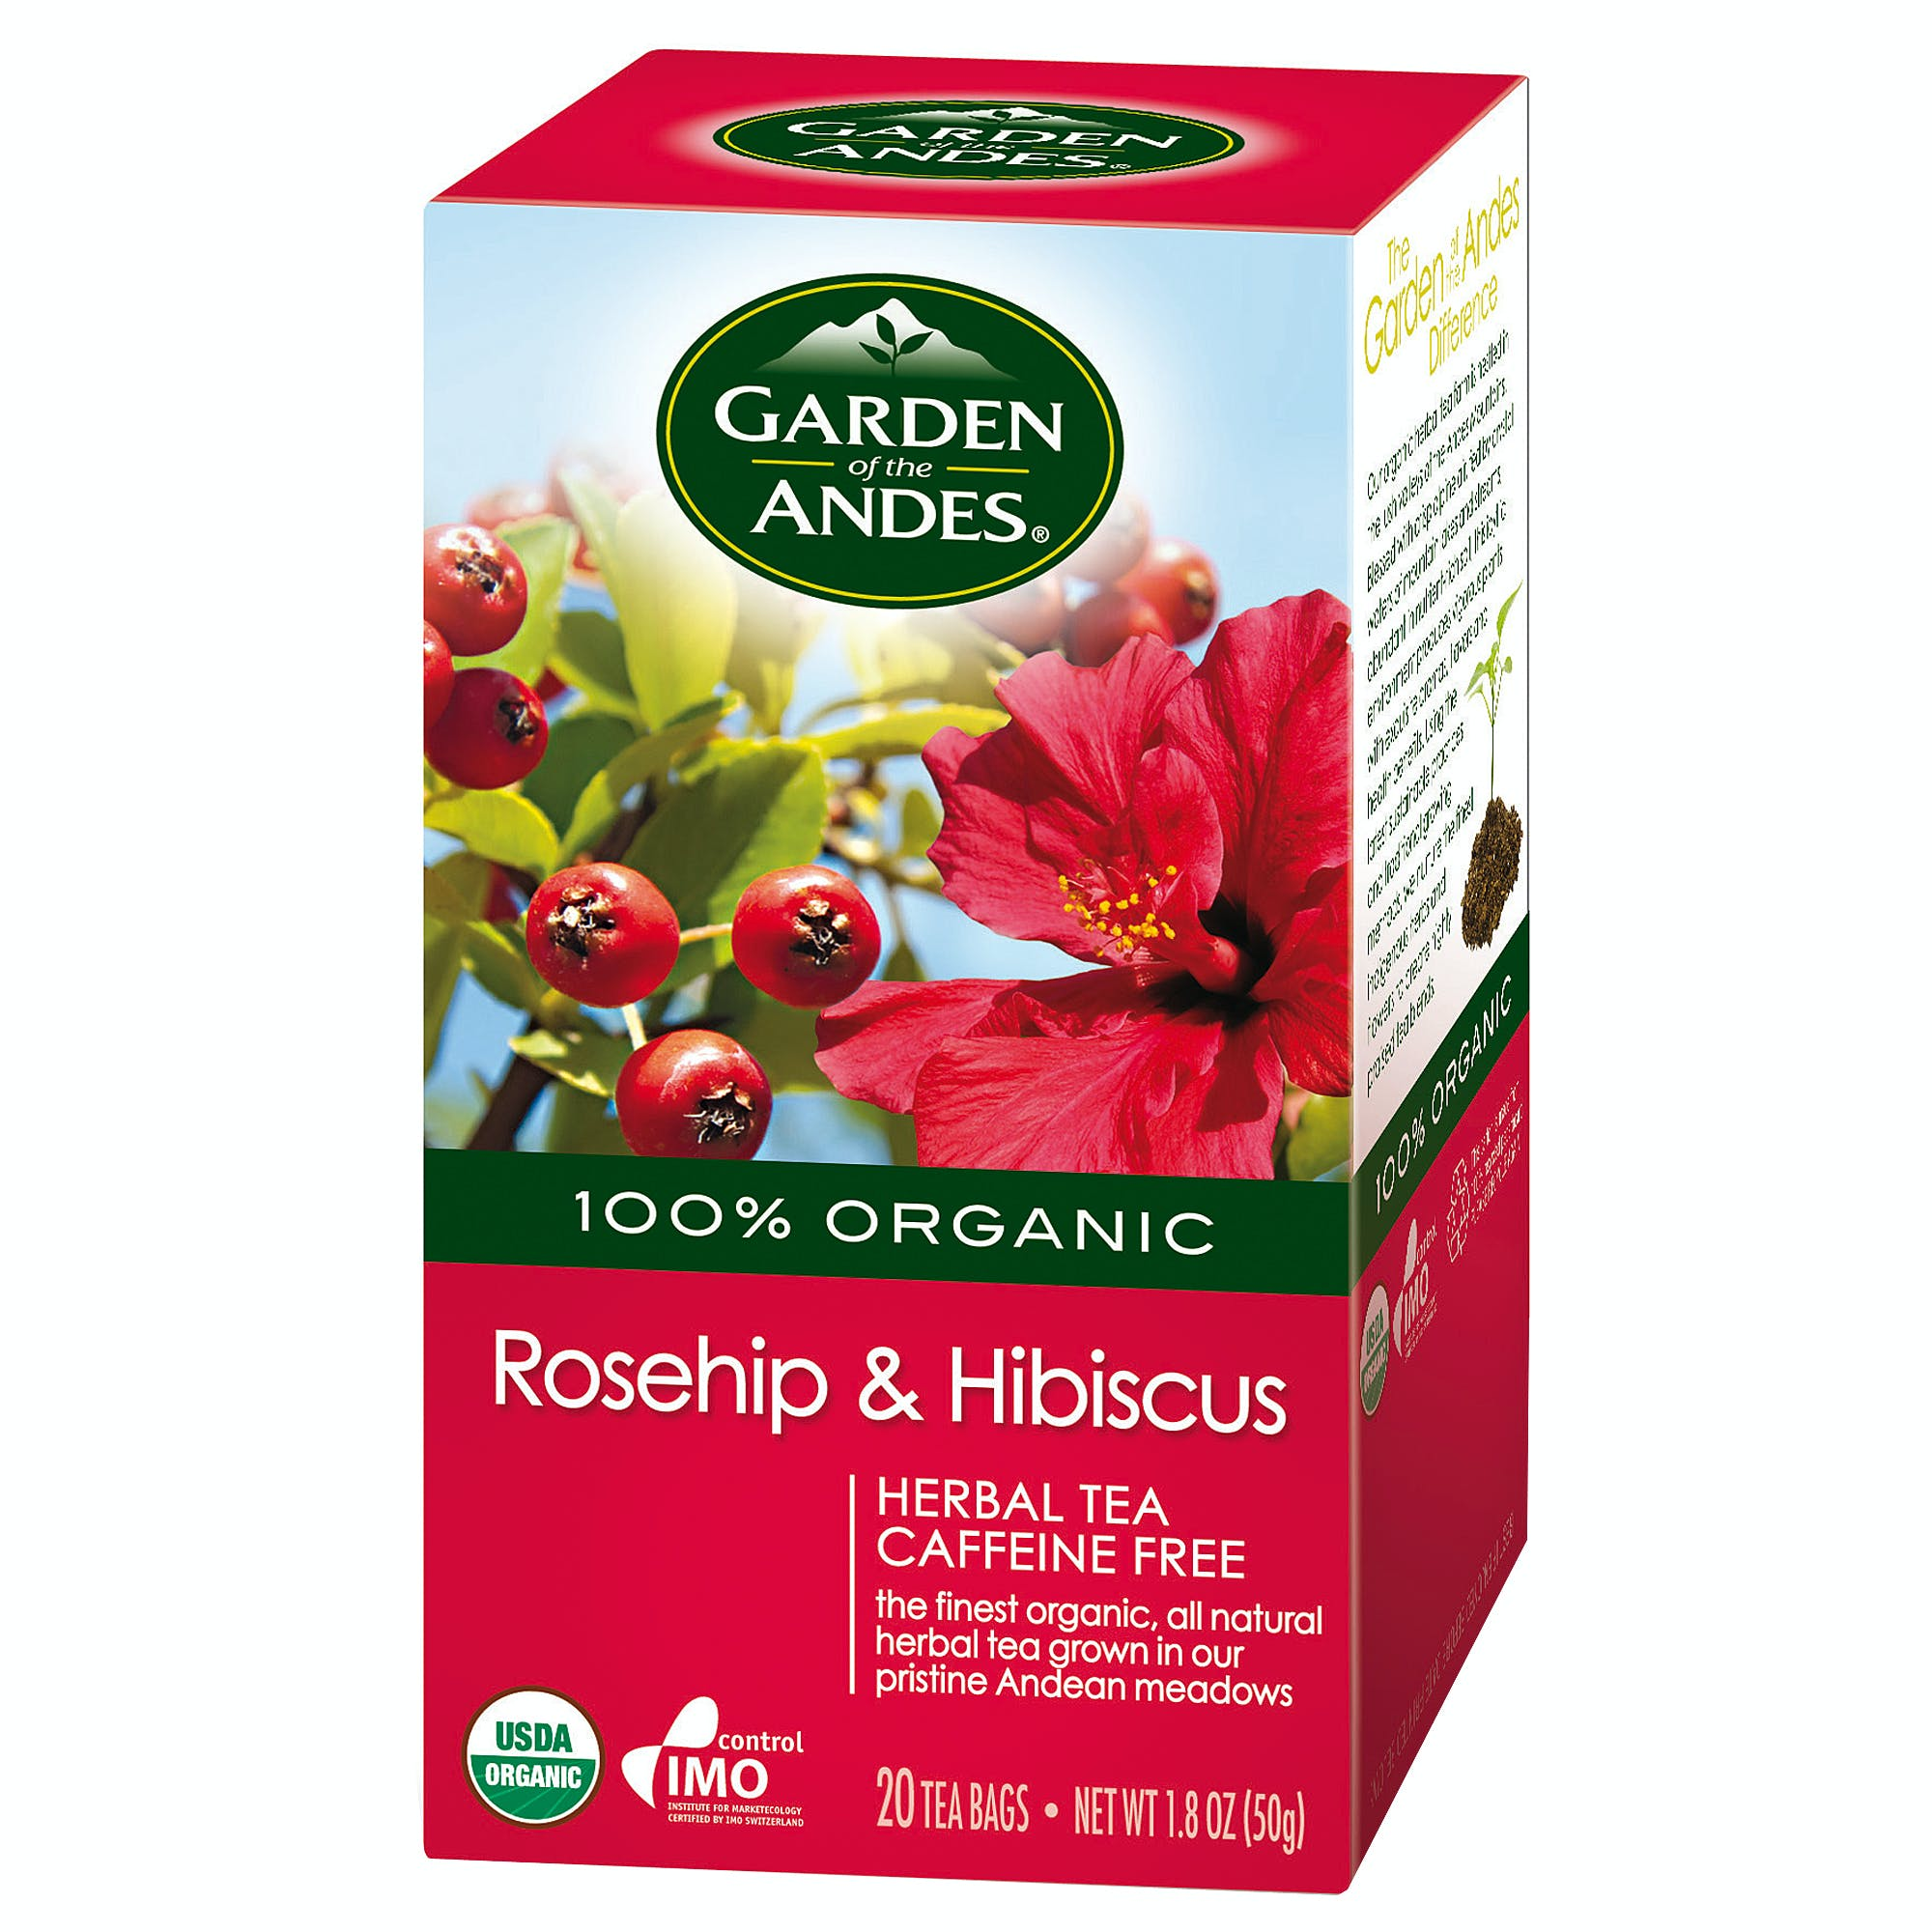 Organic Rosehip and Hibiscus Tea - sold by M5 Corporation